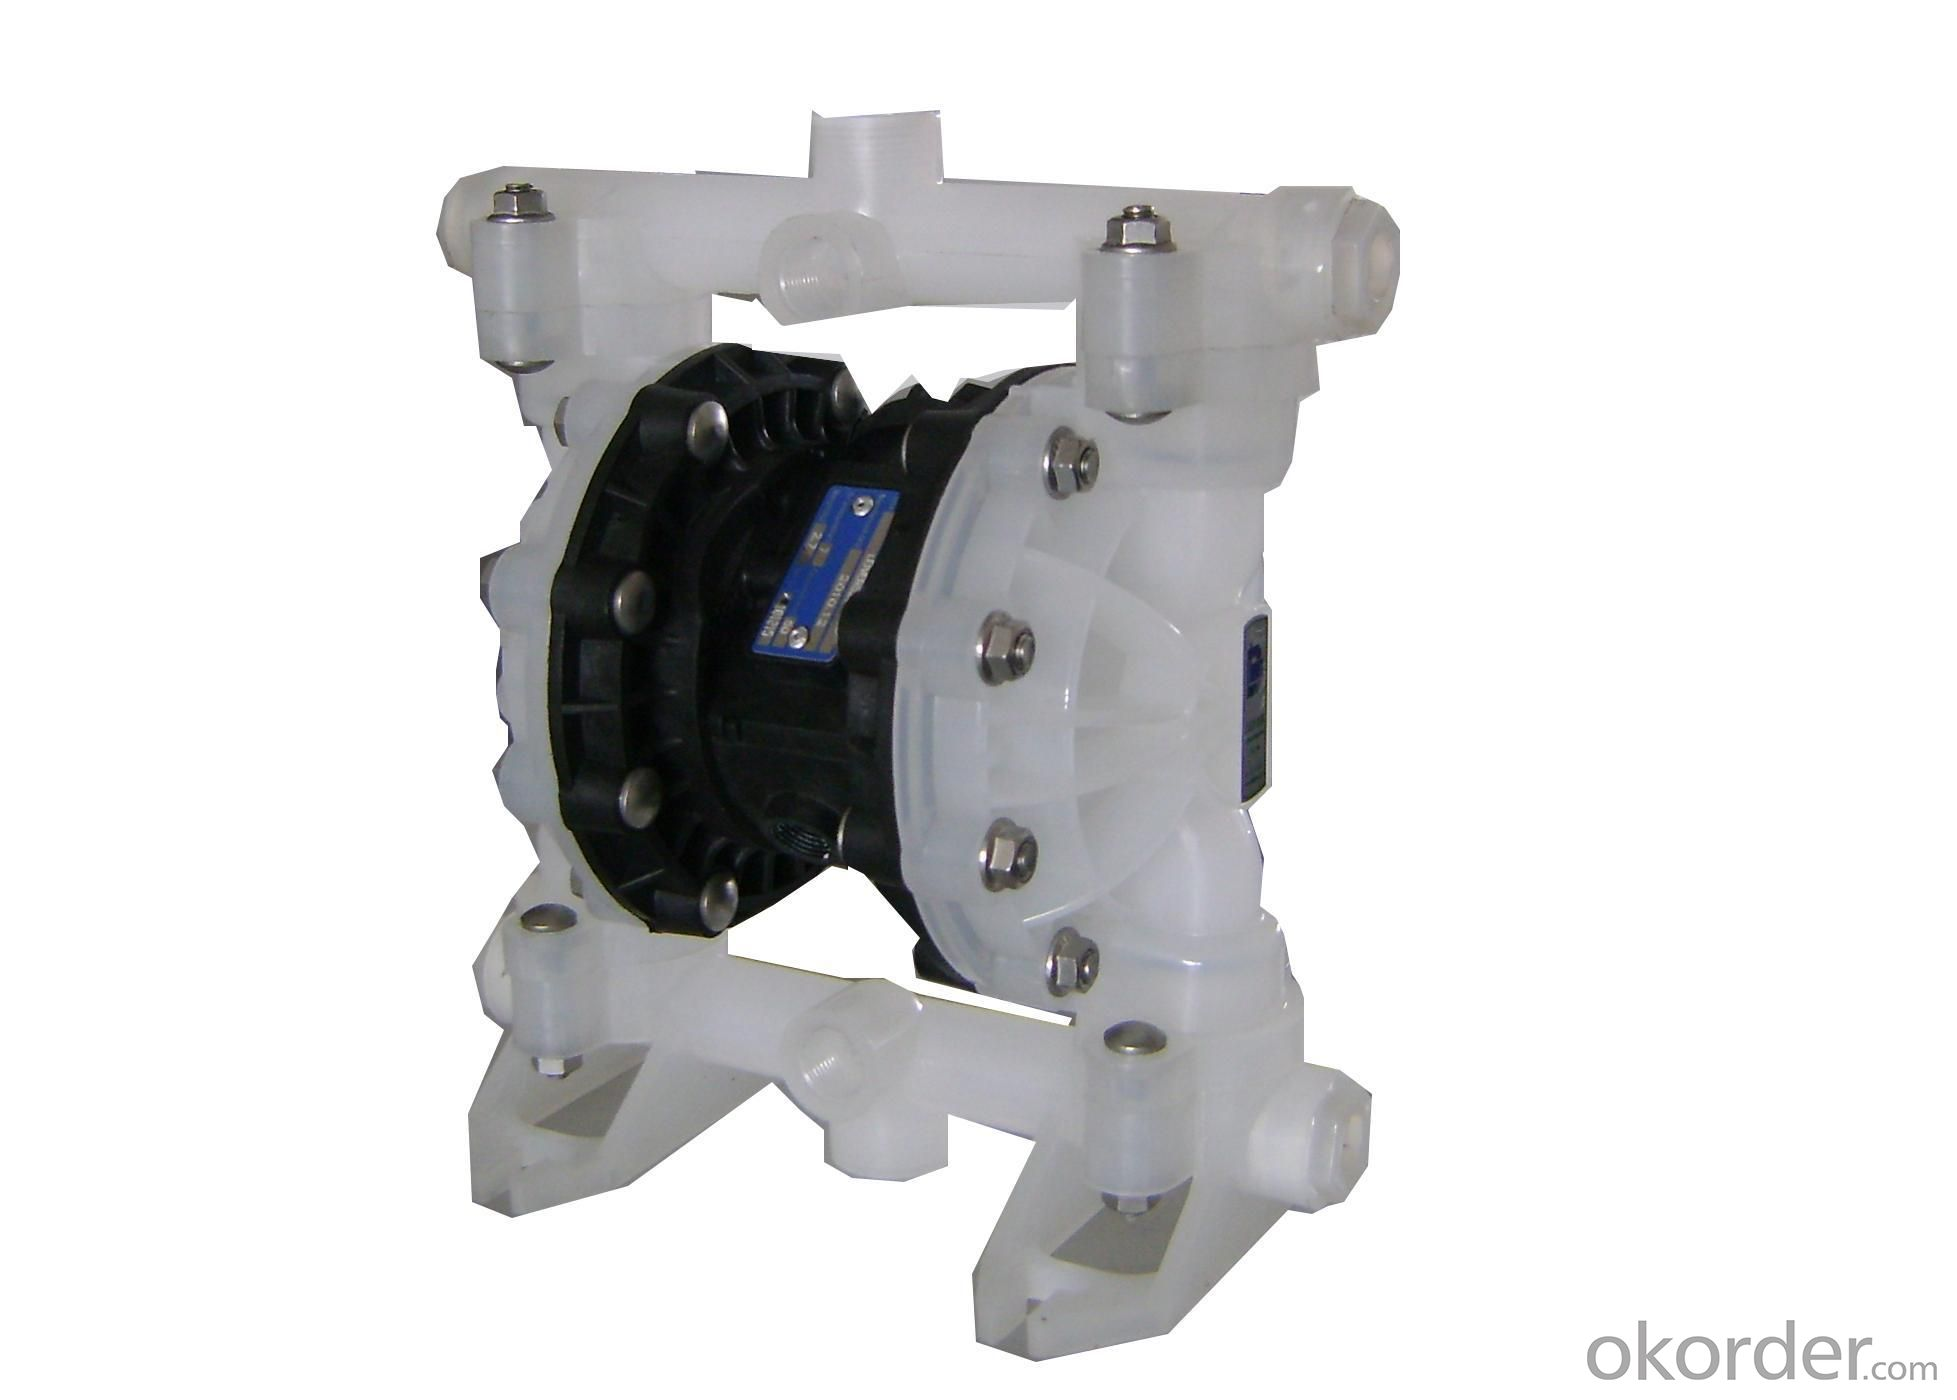 Buy pvdf diaphragm pump pricesizeweightmodelwidth okorder pvdf diaphragm pump ccuart Image collections